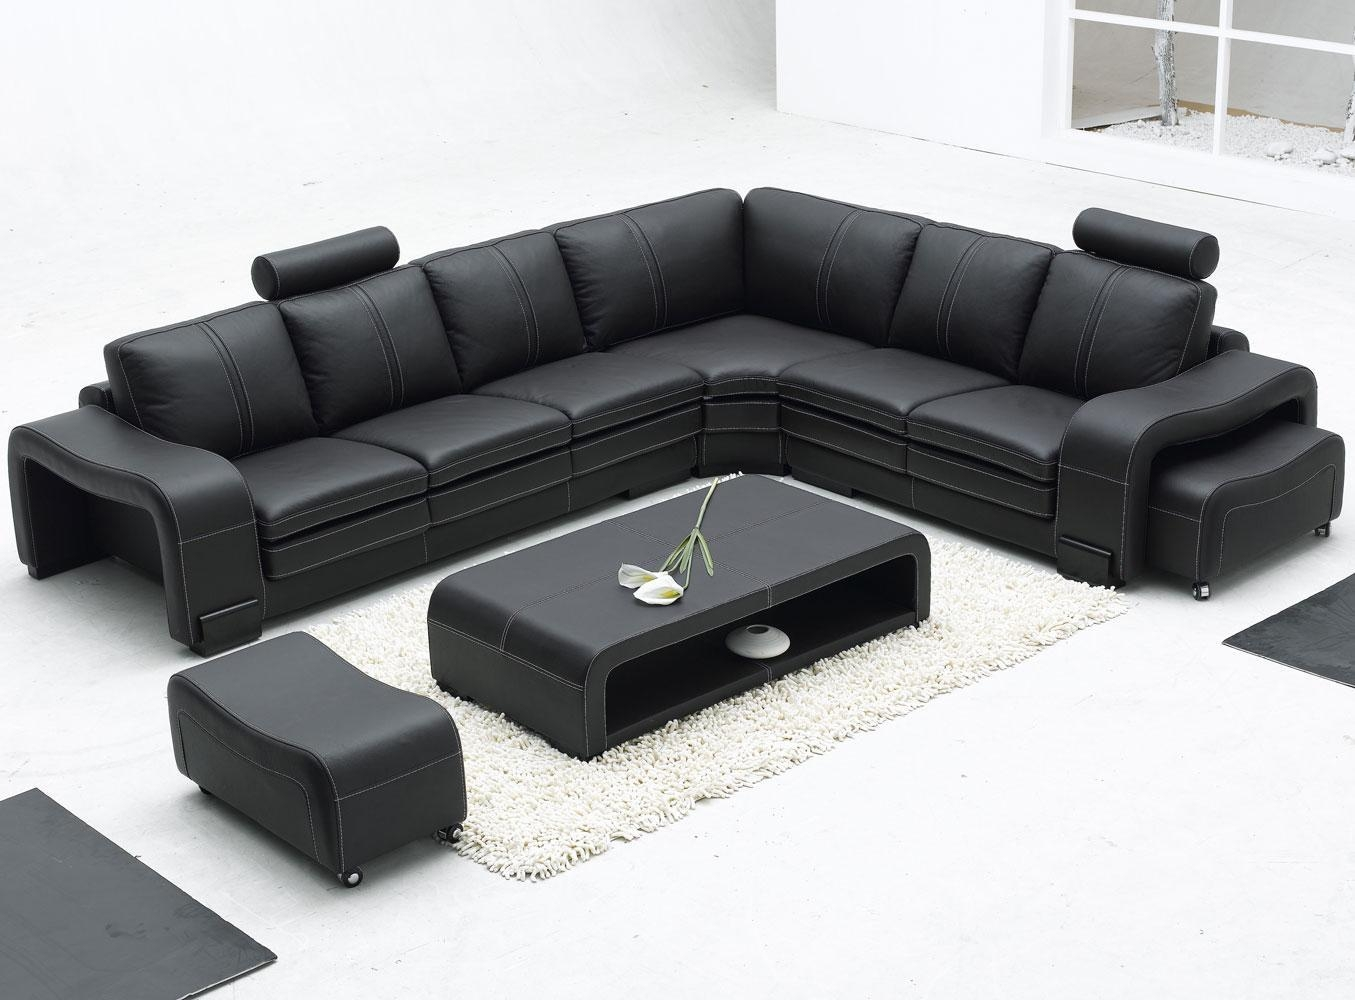 Furniture: Modern Bonded Leather Sectional Sofa In Black And Regarding Leather Modern Sectional Sofas (View 3 of 20)